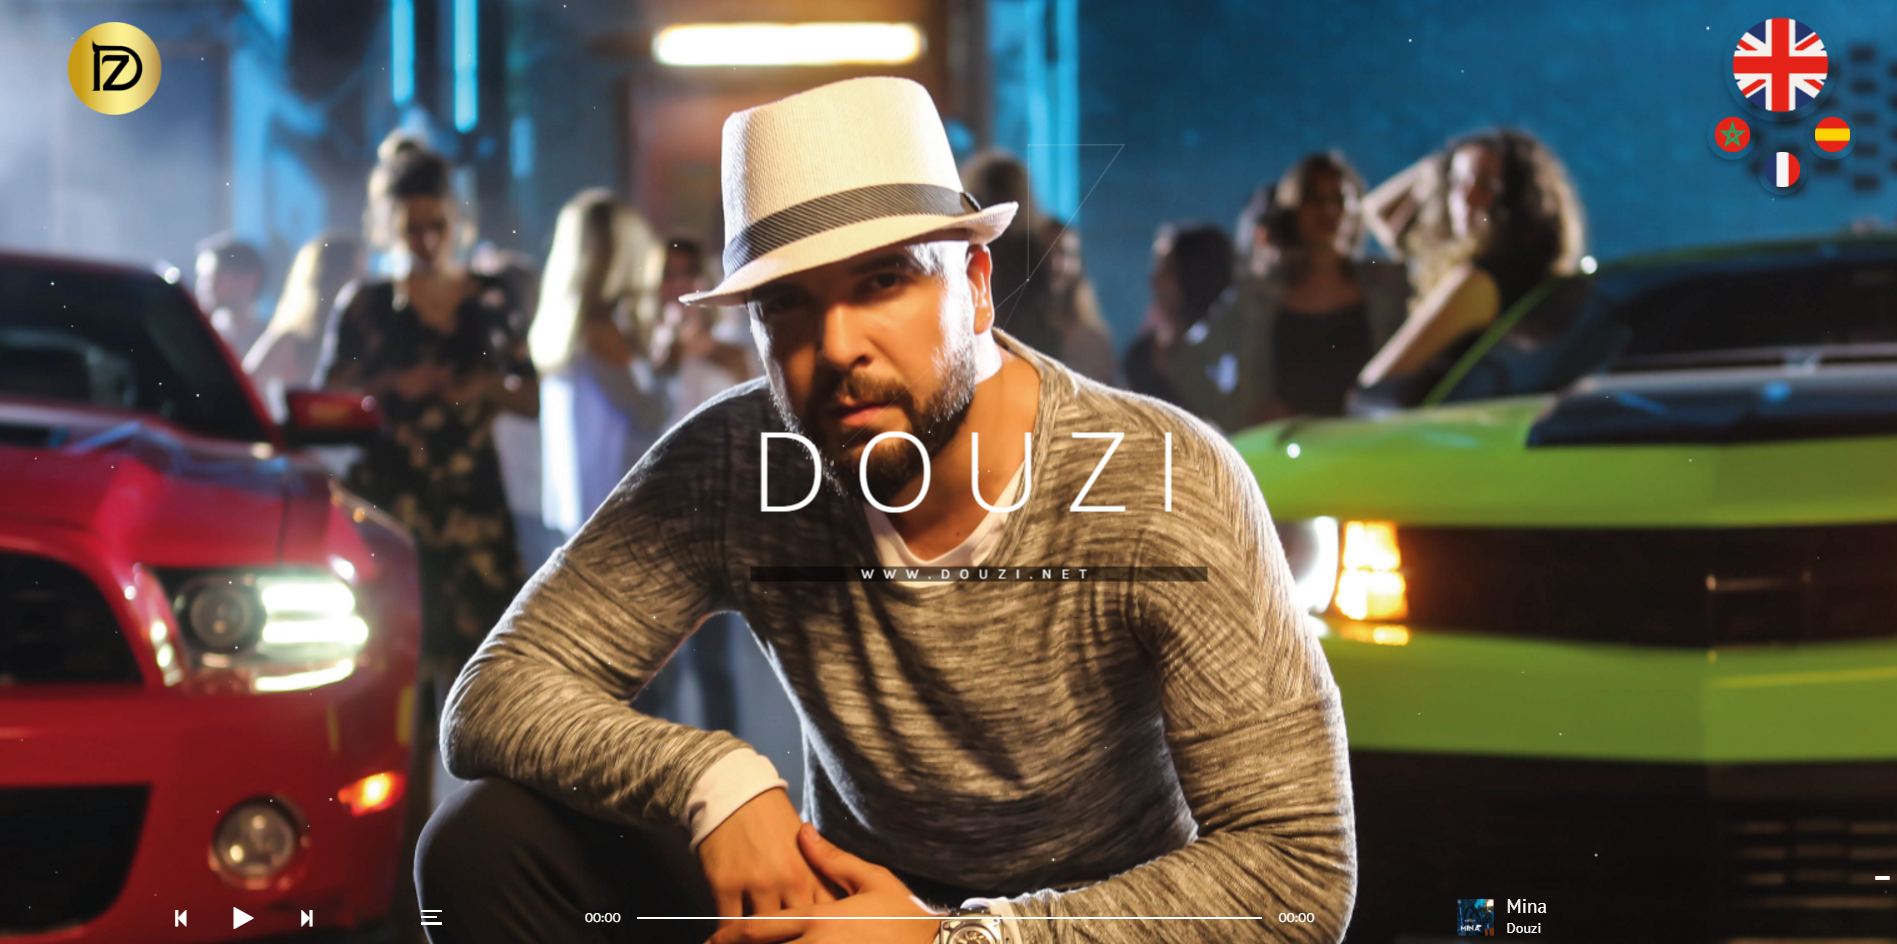 music mp3 douzi mina